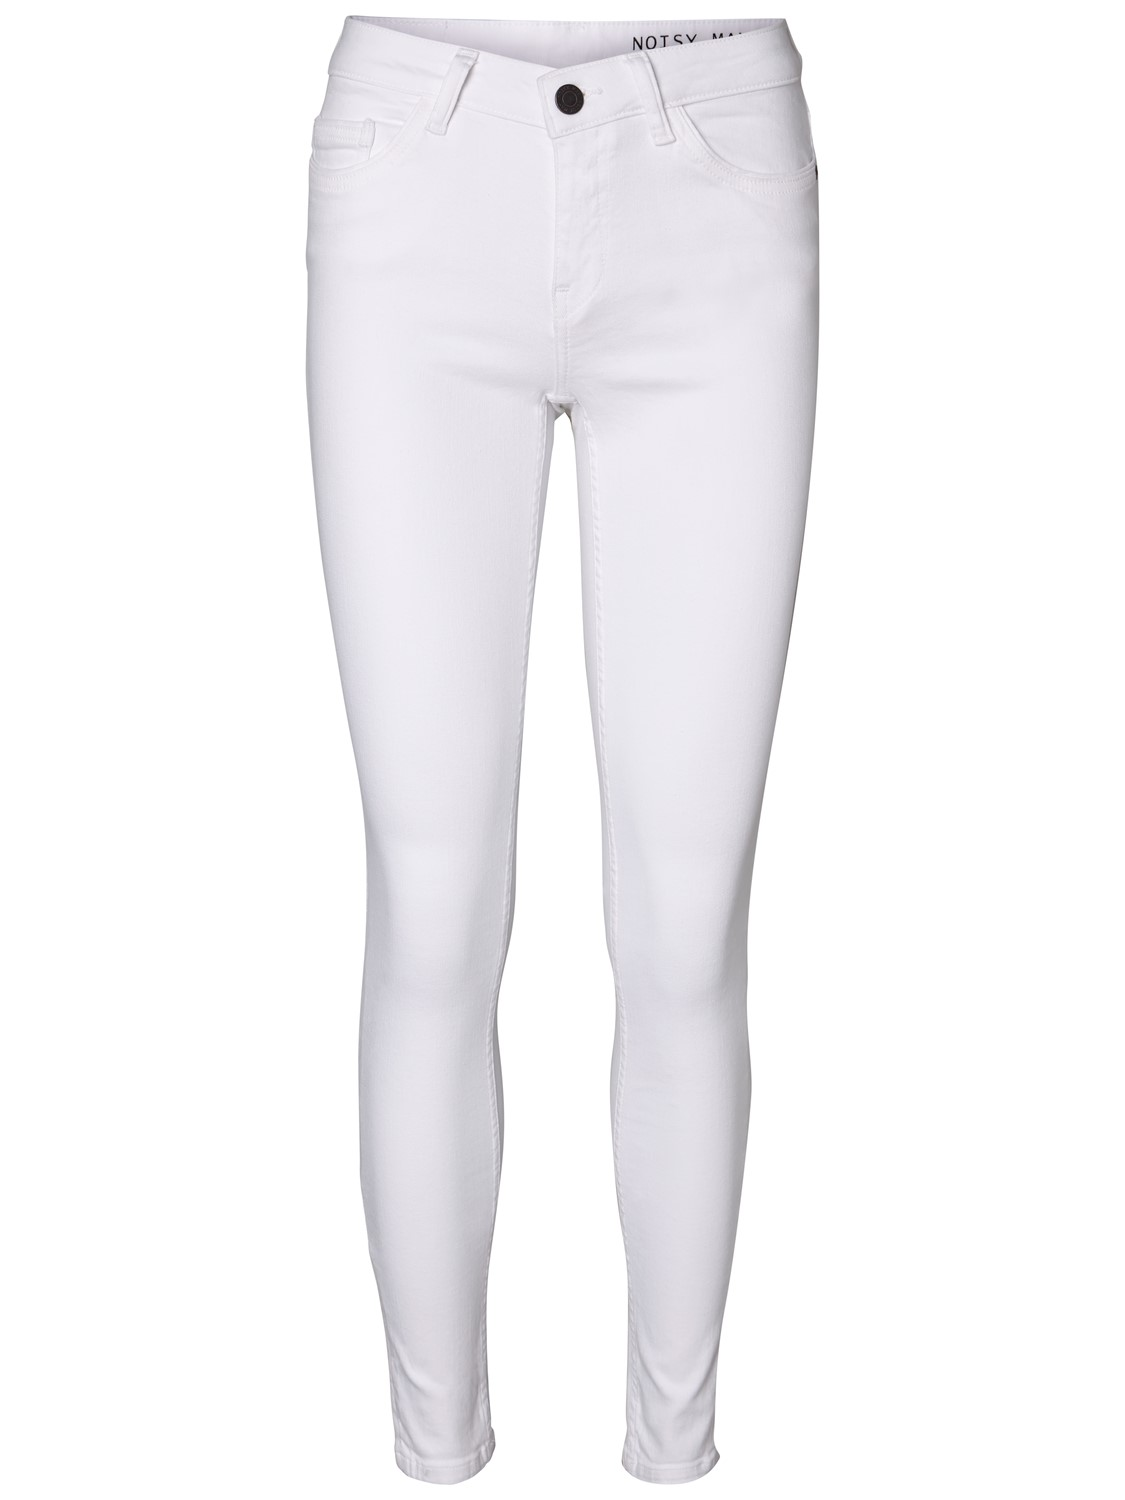 Noisy May Damen Jeans NMEVE LW PCKT PIPING WHITE JEANS Slim Fit Weiß Bright White